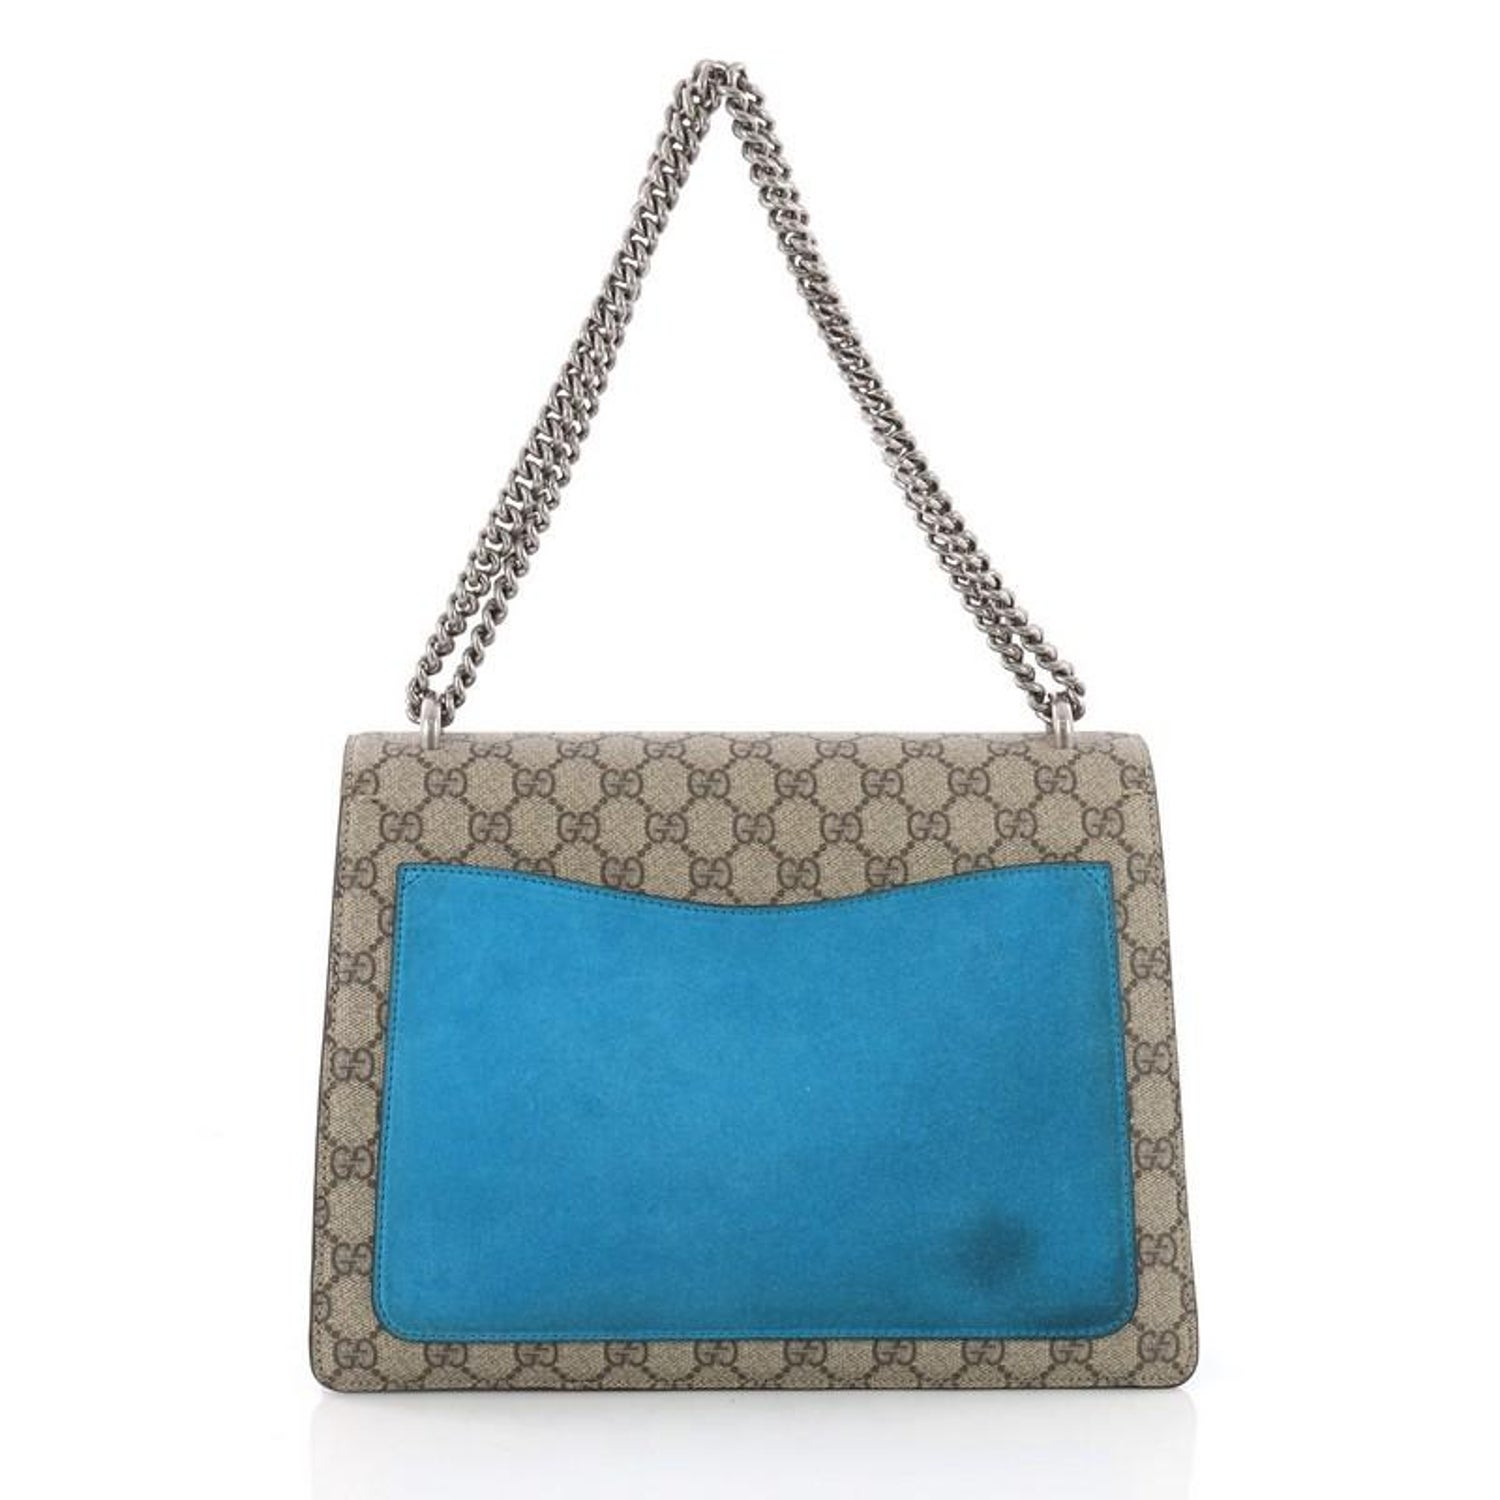 8e4e984d703 Gucci Dionysus Handbag GG Coated Canvas Medium at 1stdibs